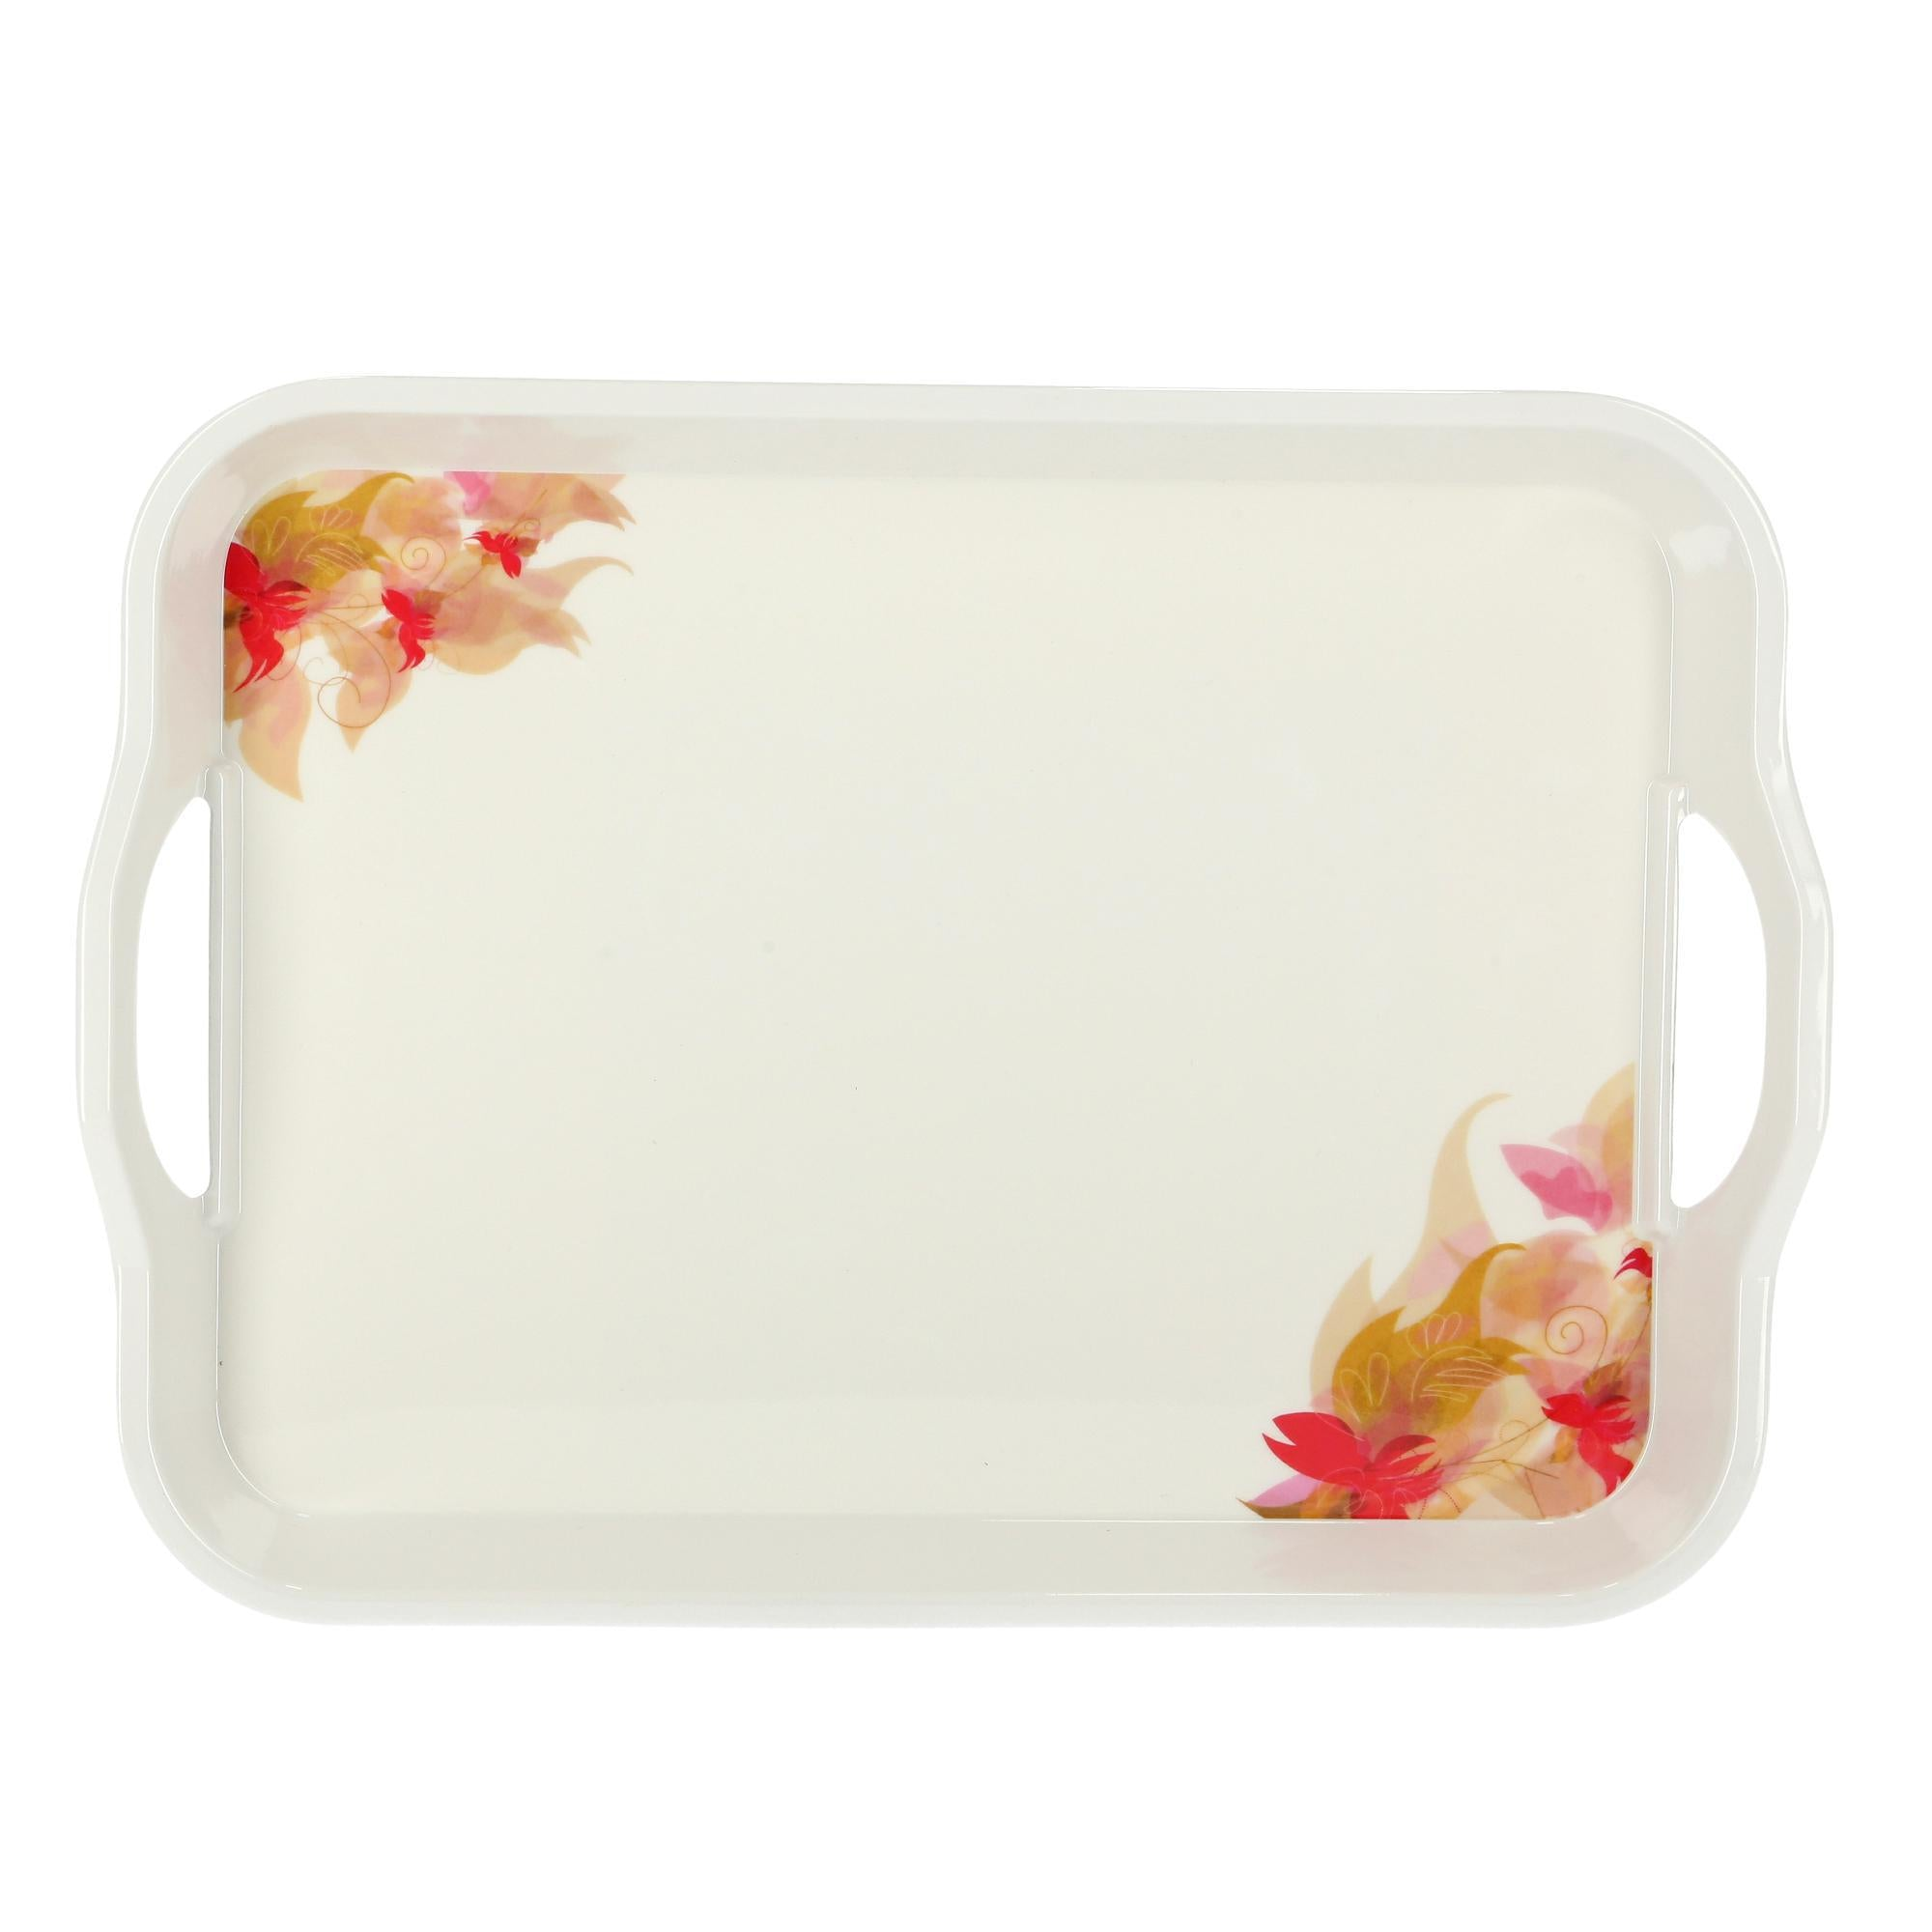 Royalford RF5063 Melamine Flower Carnival Handle Tray, 17.5 Inch